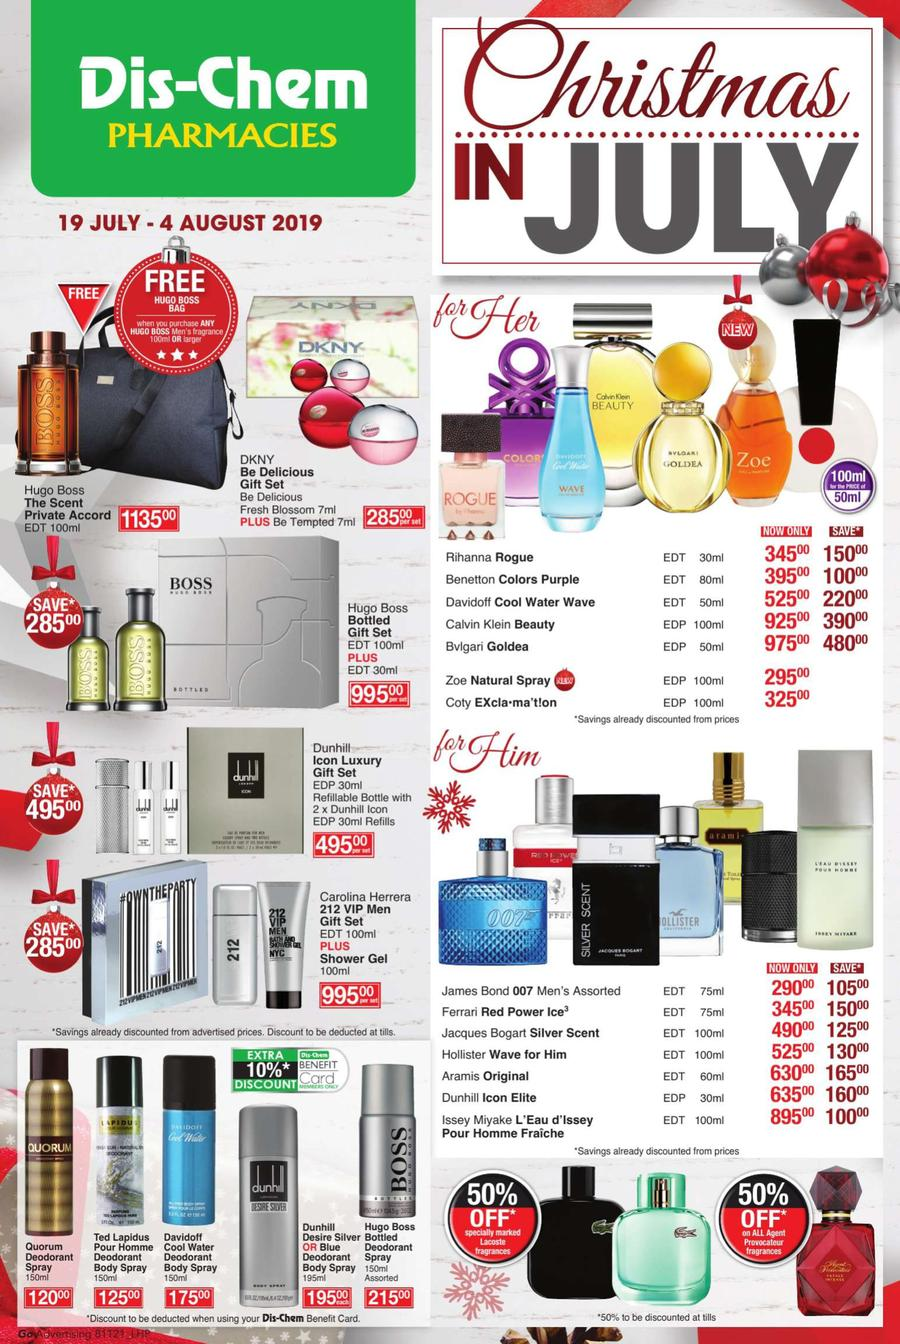 Christmas Specials 2019.Dis Chem Christmas In July 19 Jul 04 Aug 2019 Www